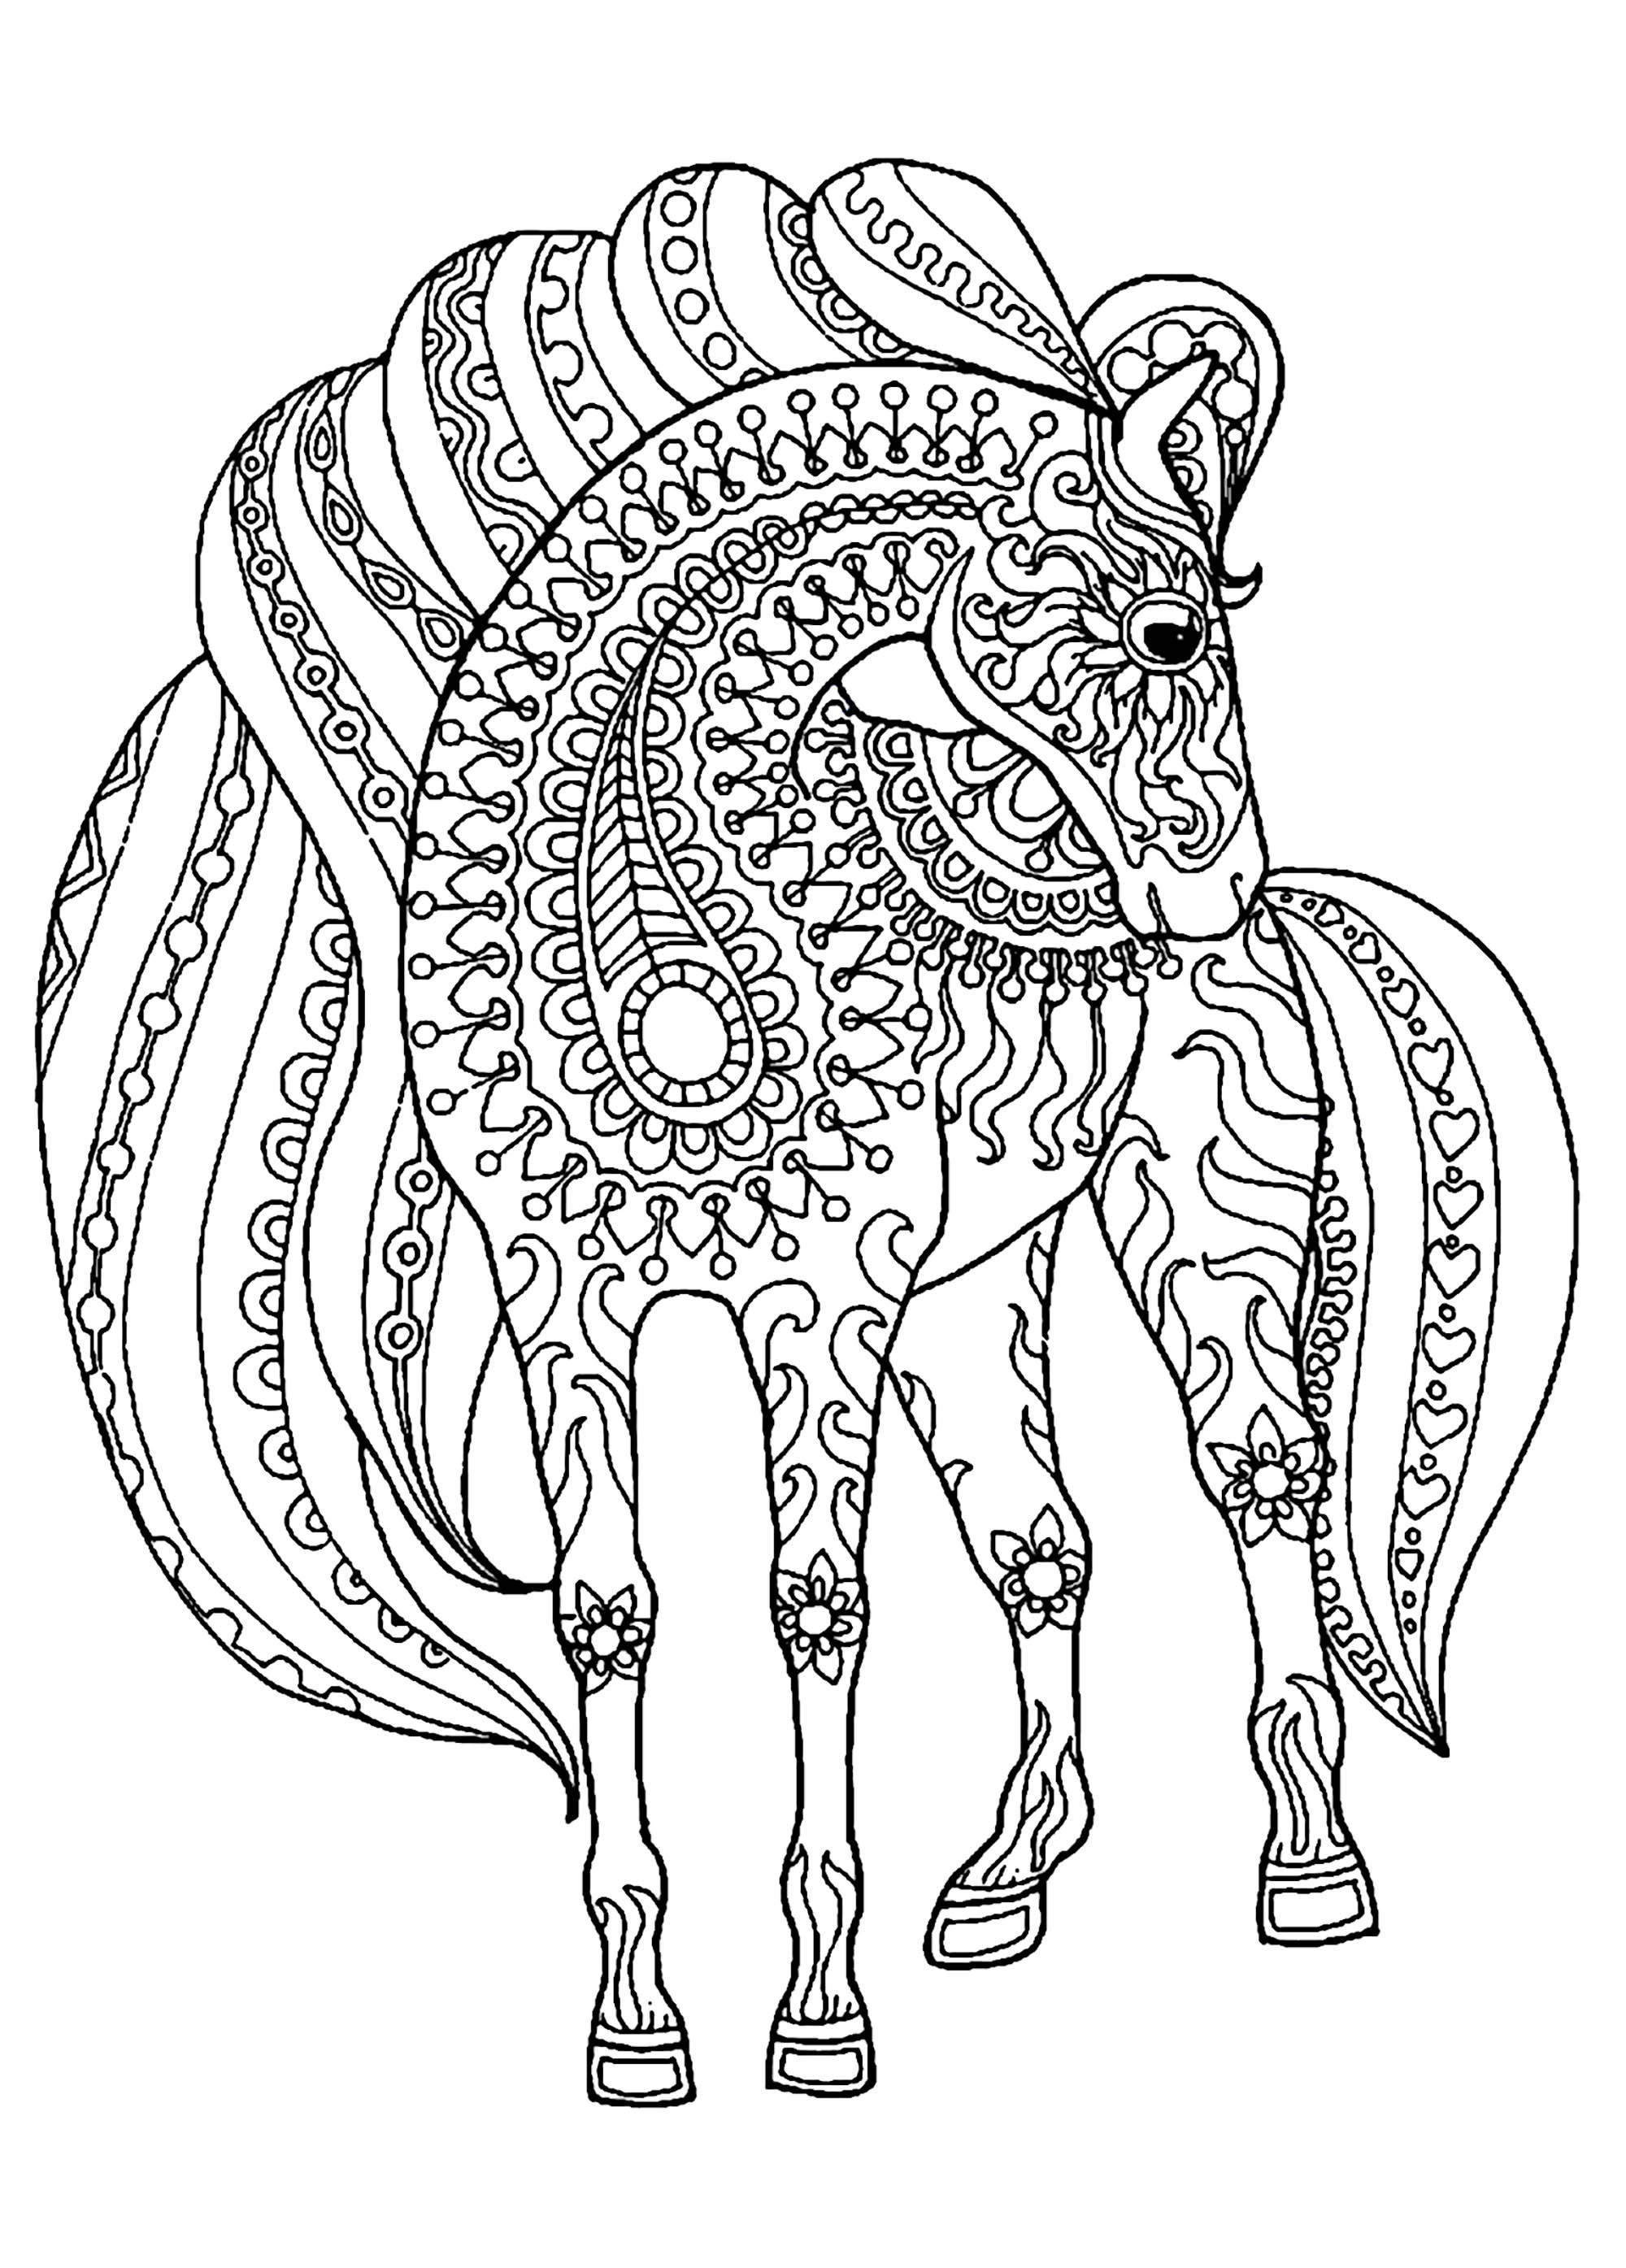 Printable Horse Coloring Pages For Adults  Horse simple zentangle patterns Horses Adult Coloring Pages